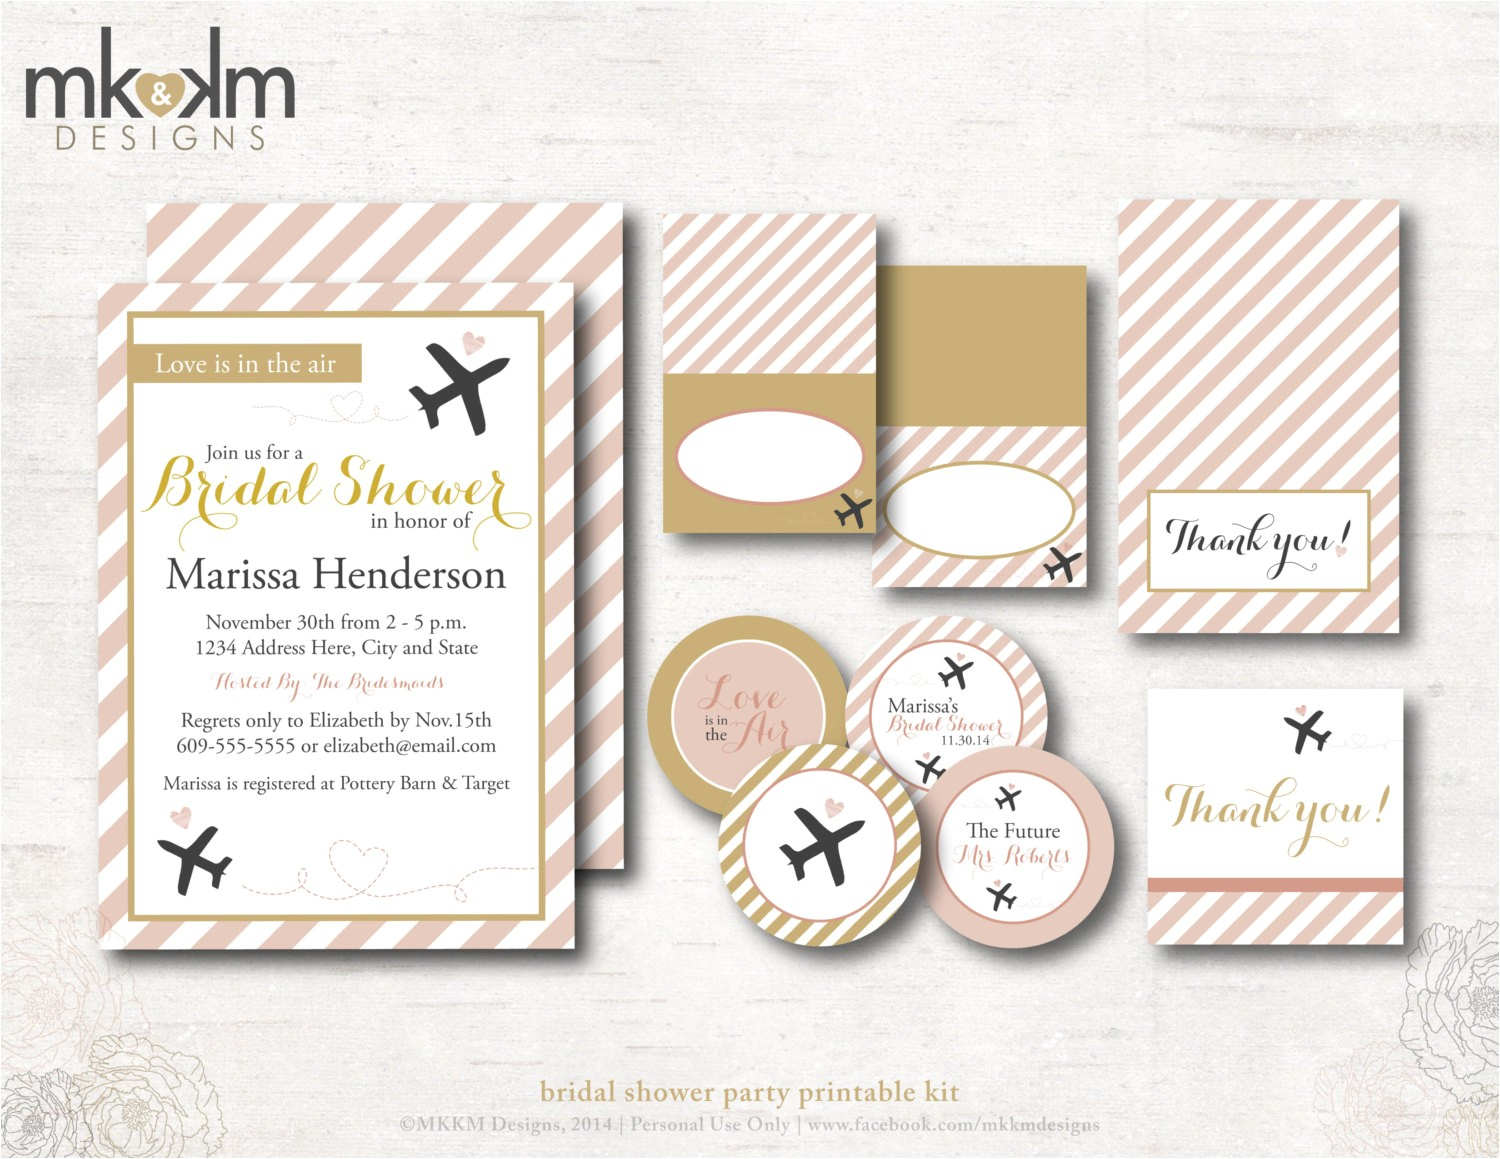 travel bridal shower invitation kit